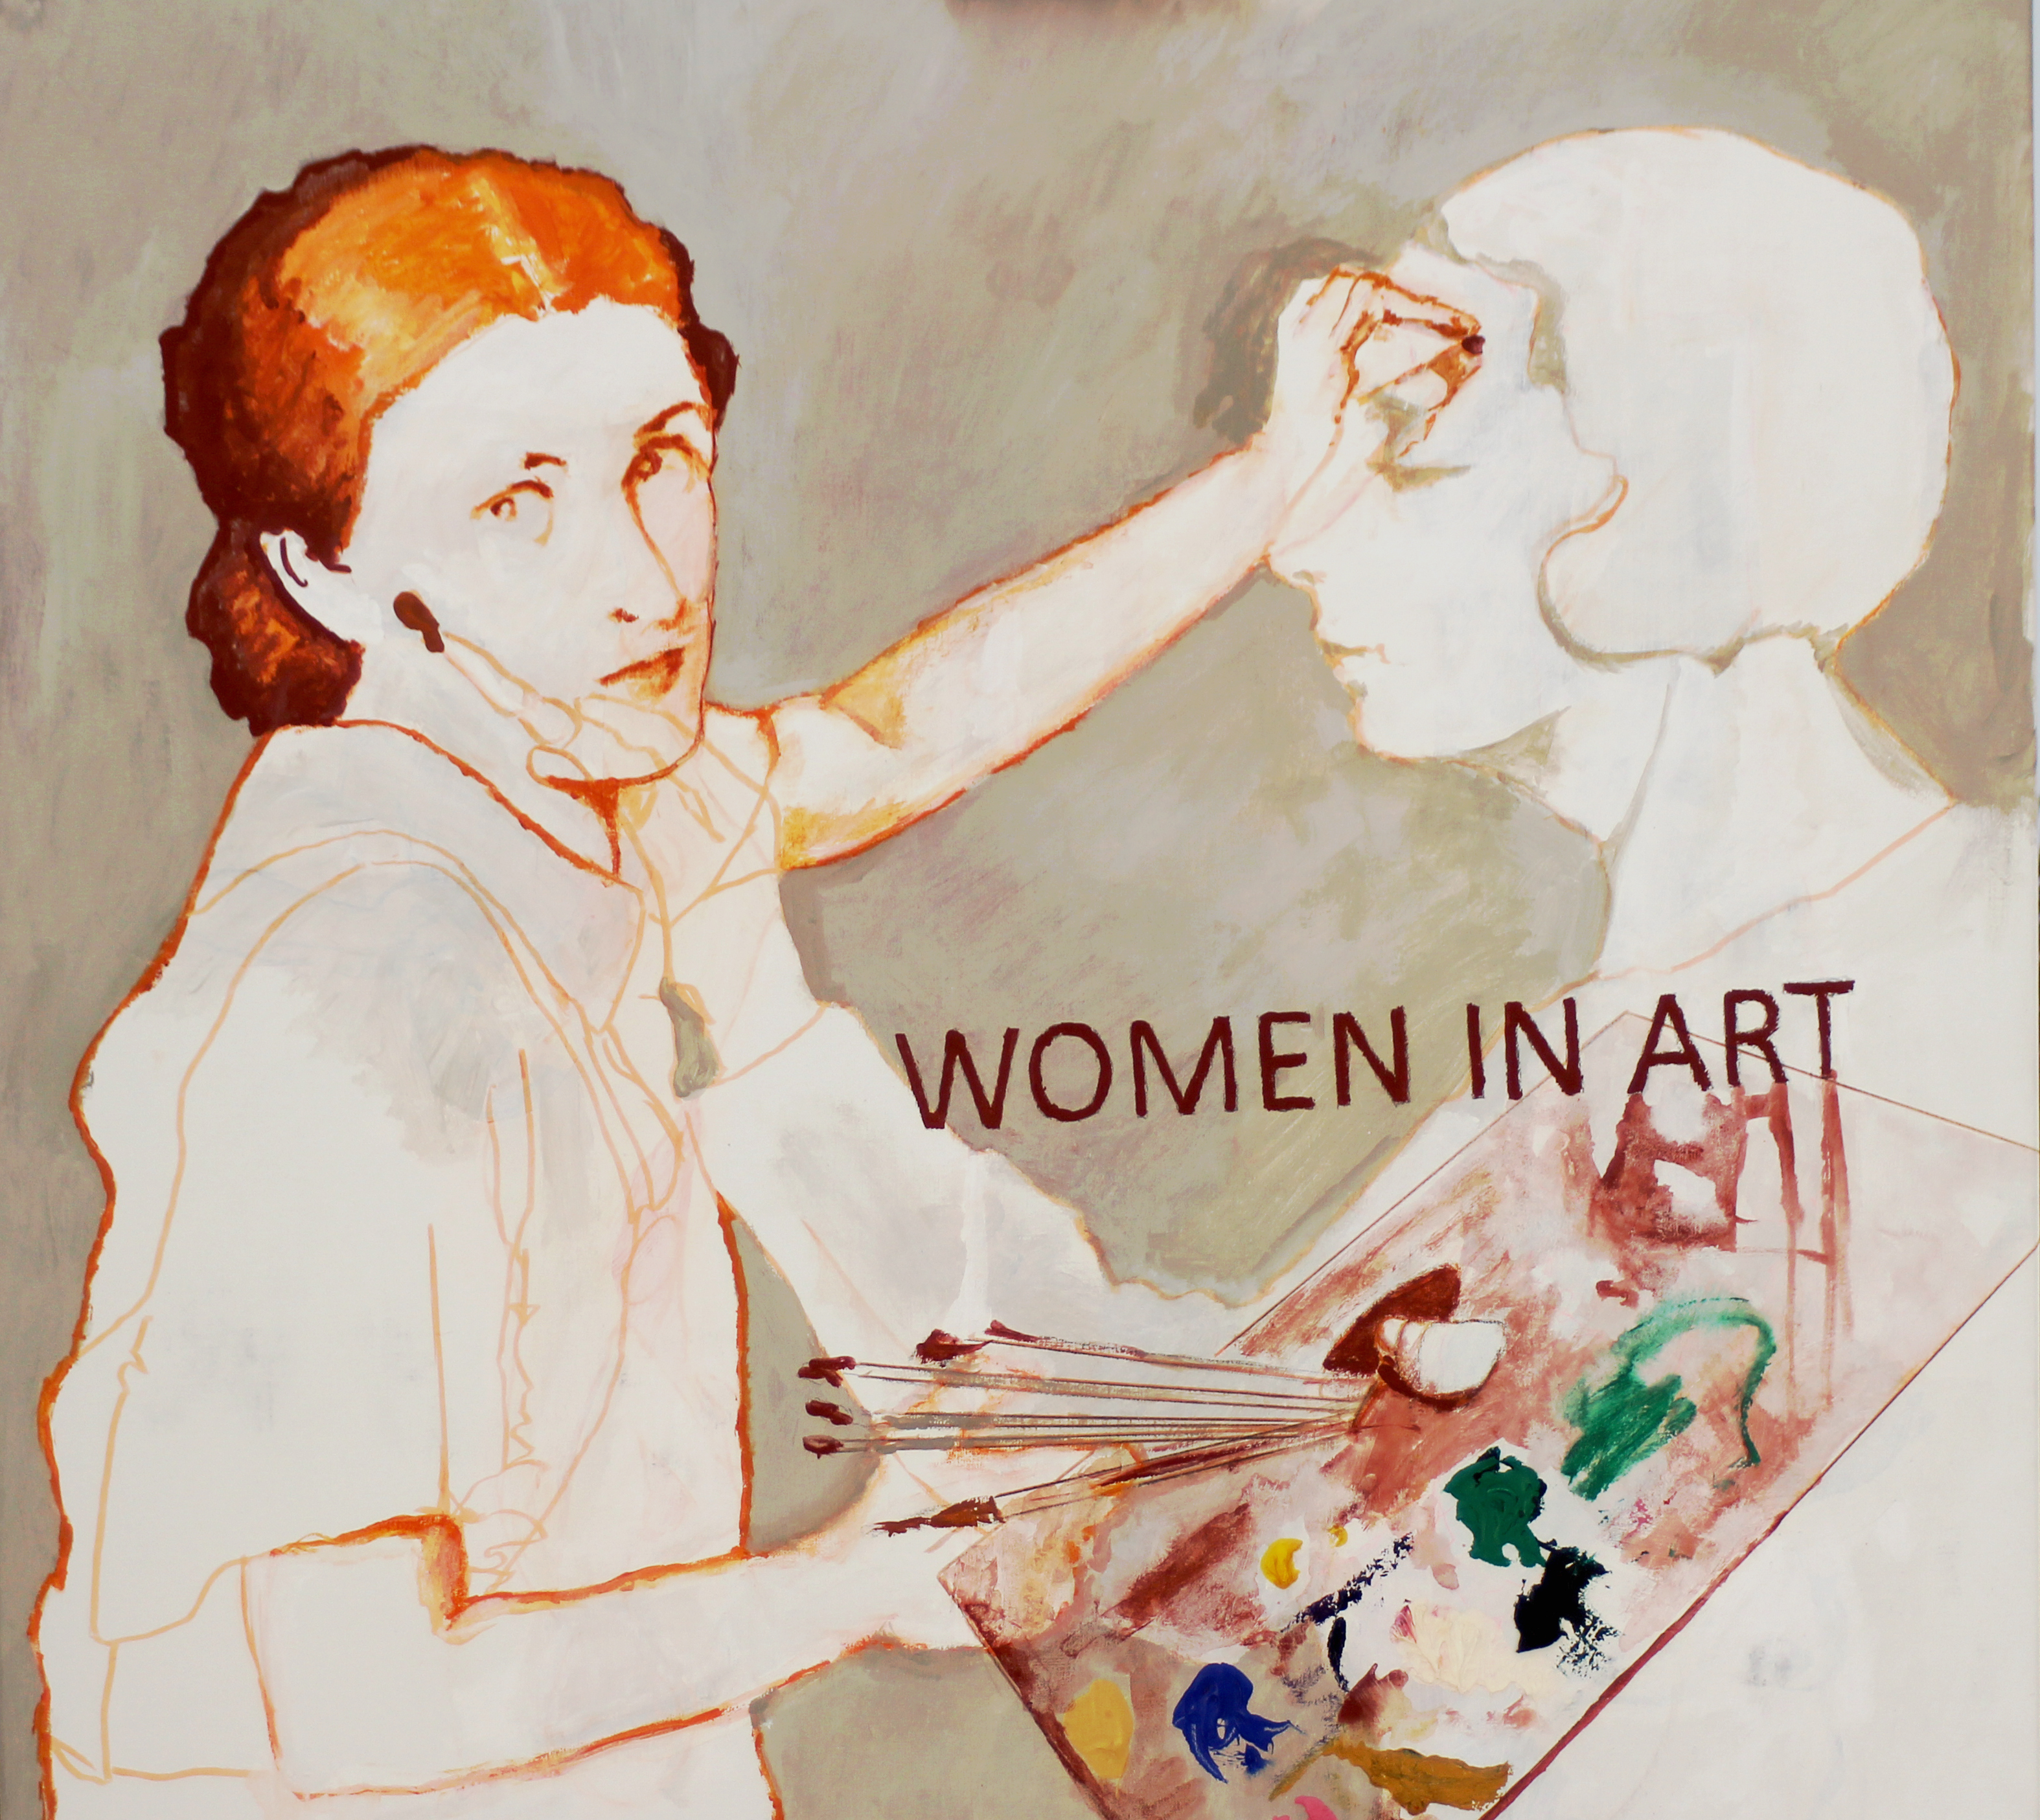 WOMEN IN ART